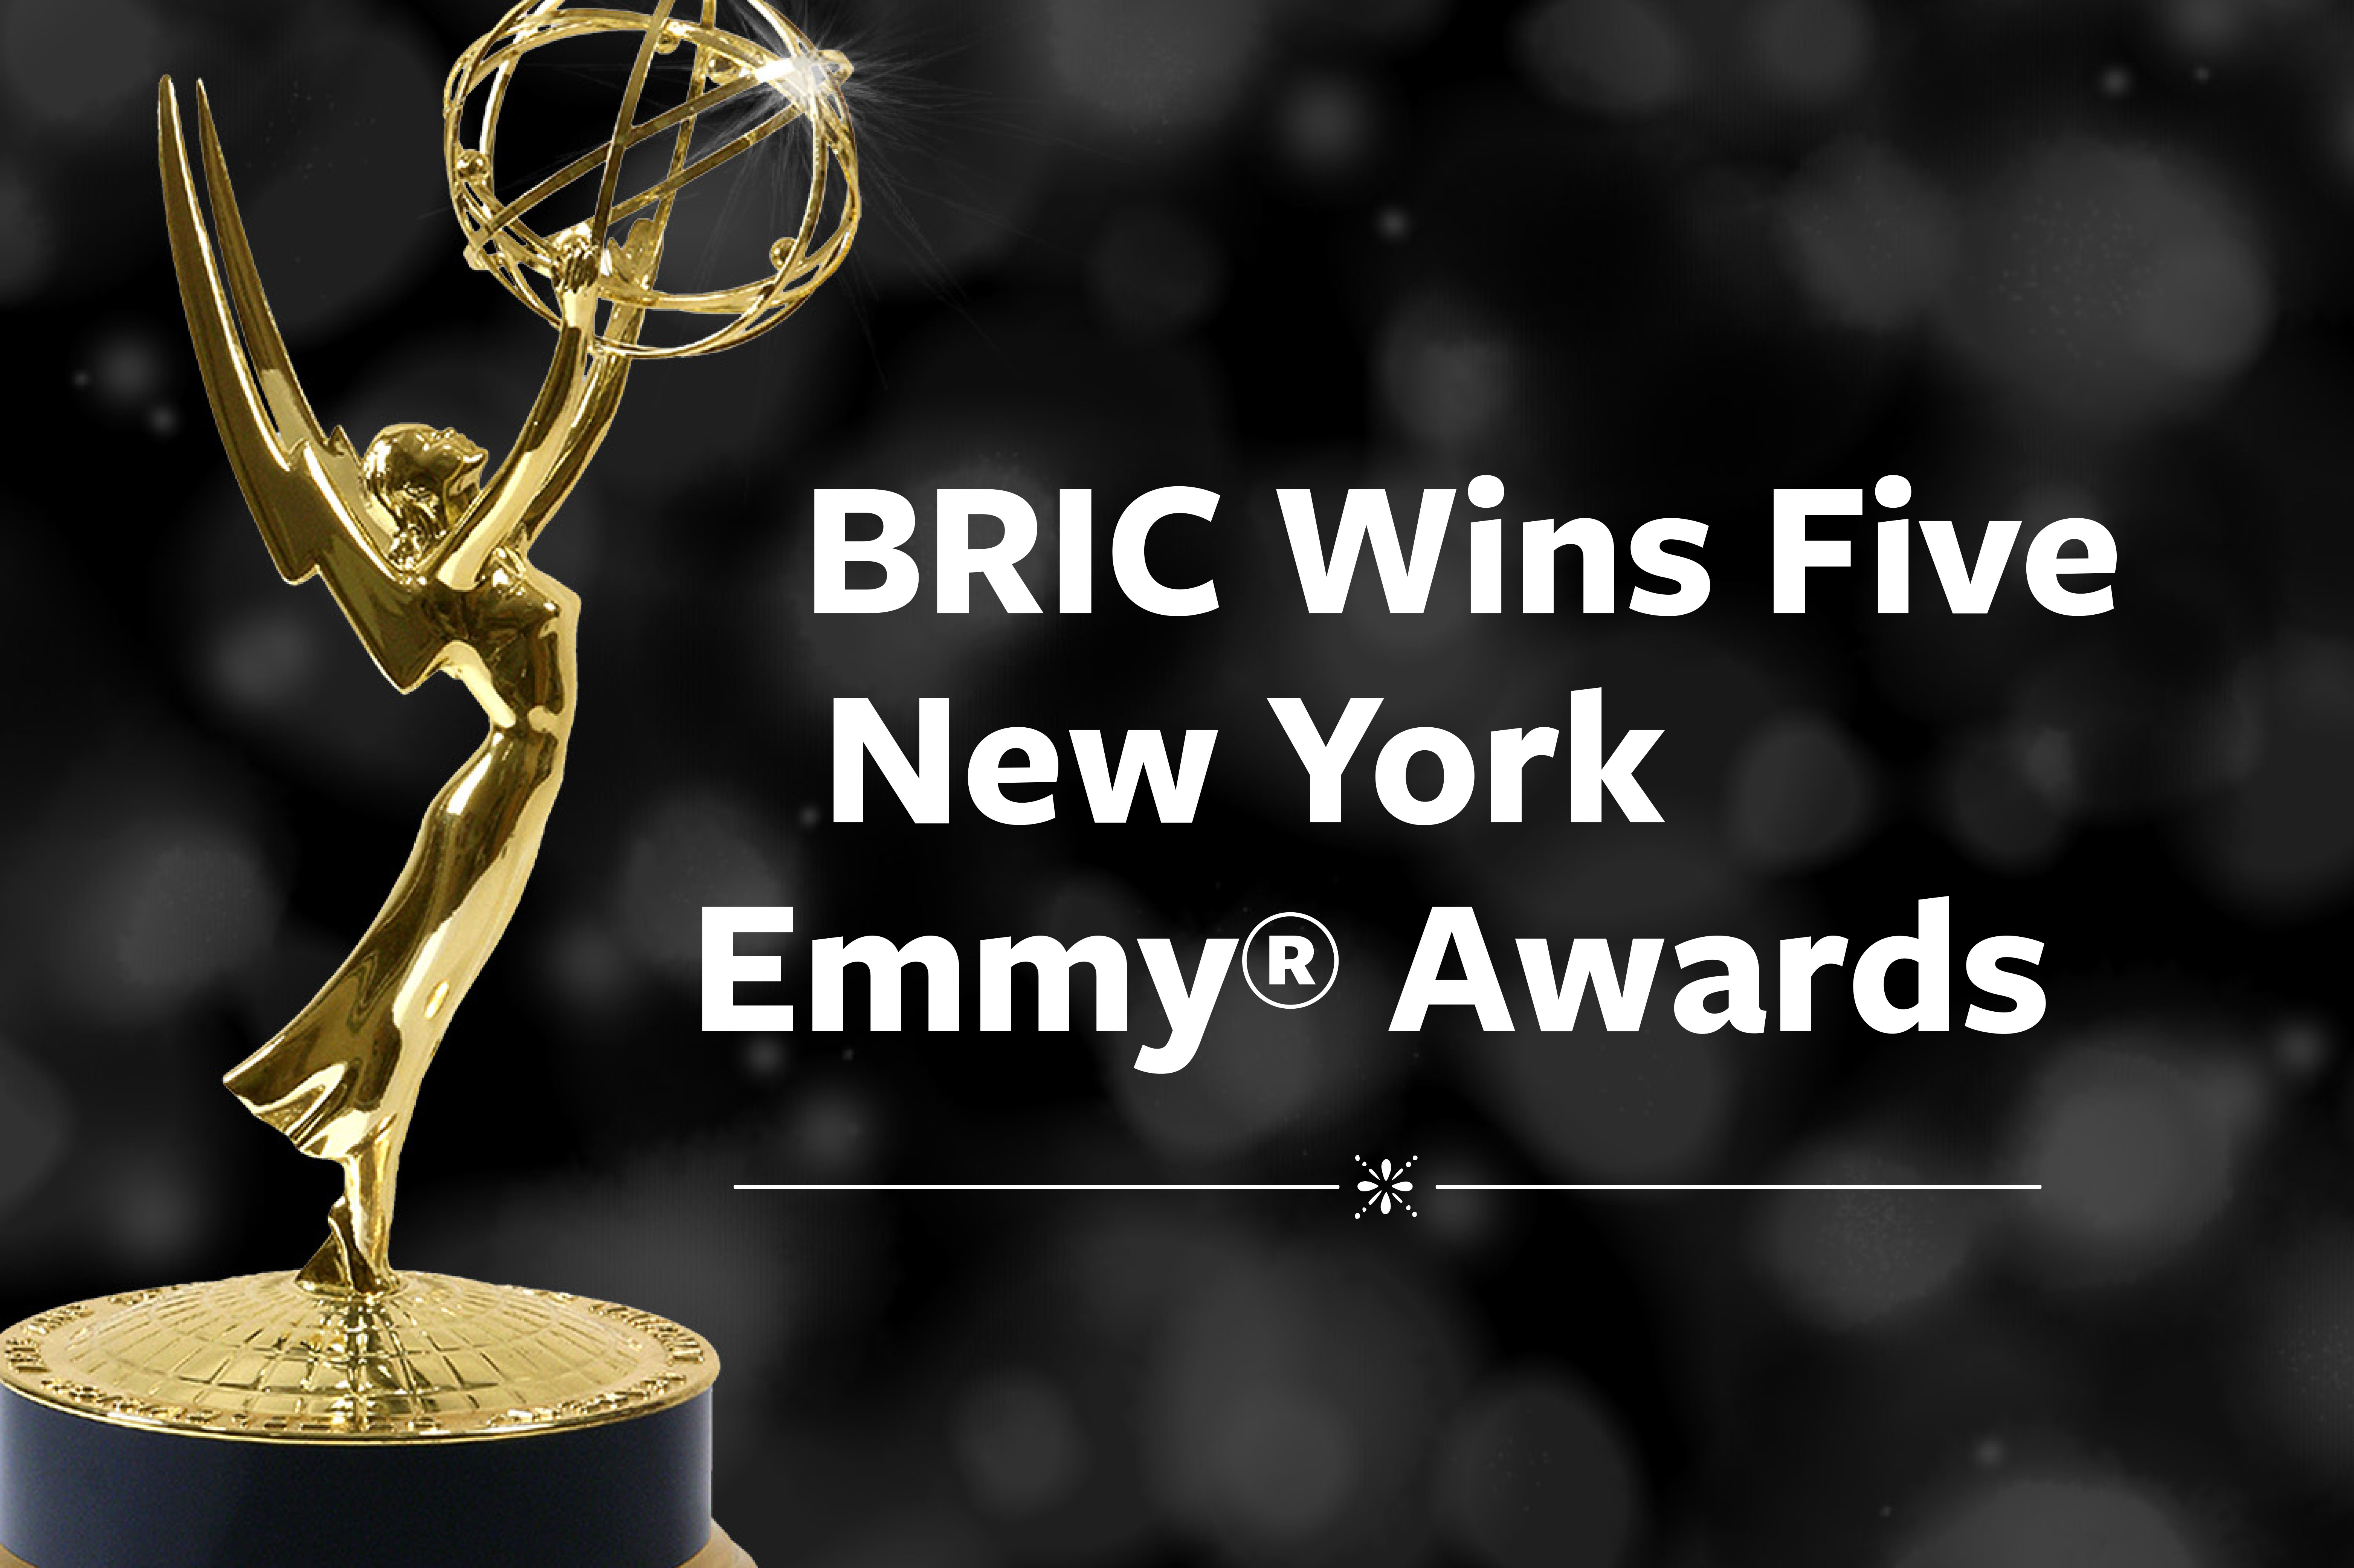 BRIC's Two Community Media TV Networks—BRIC TV and Brooklyn Free